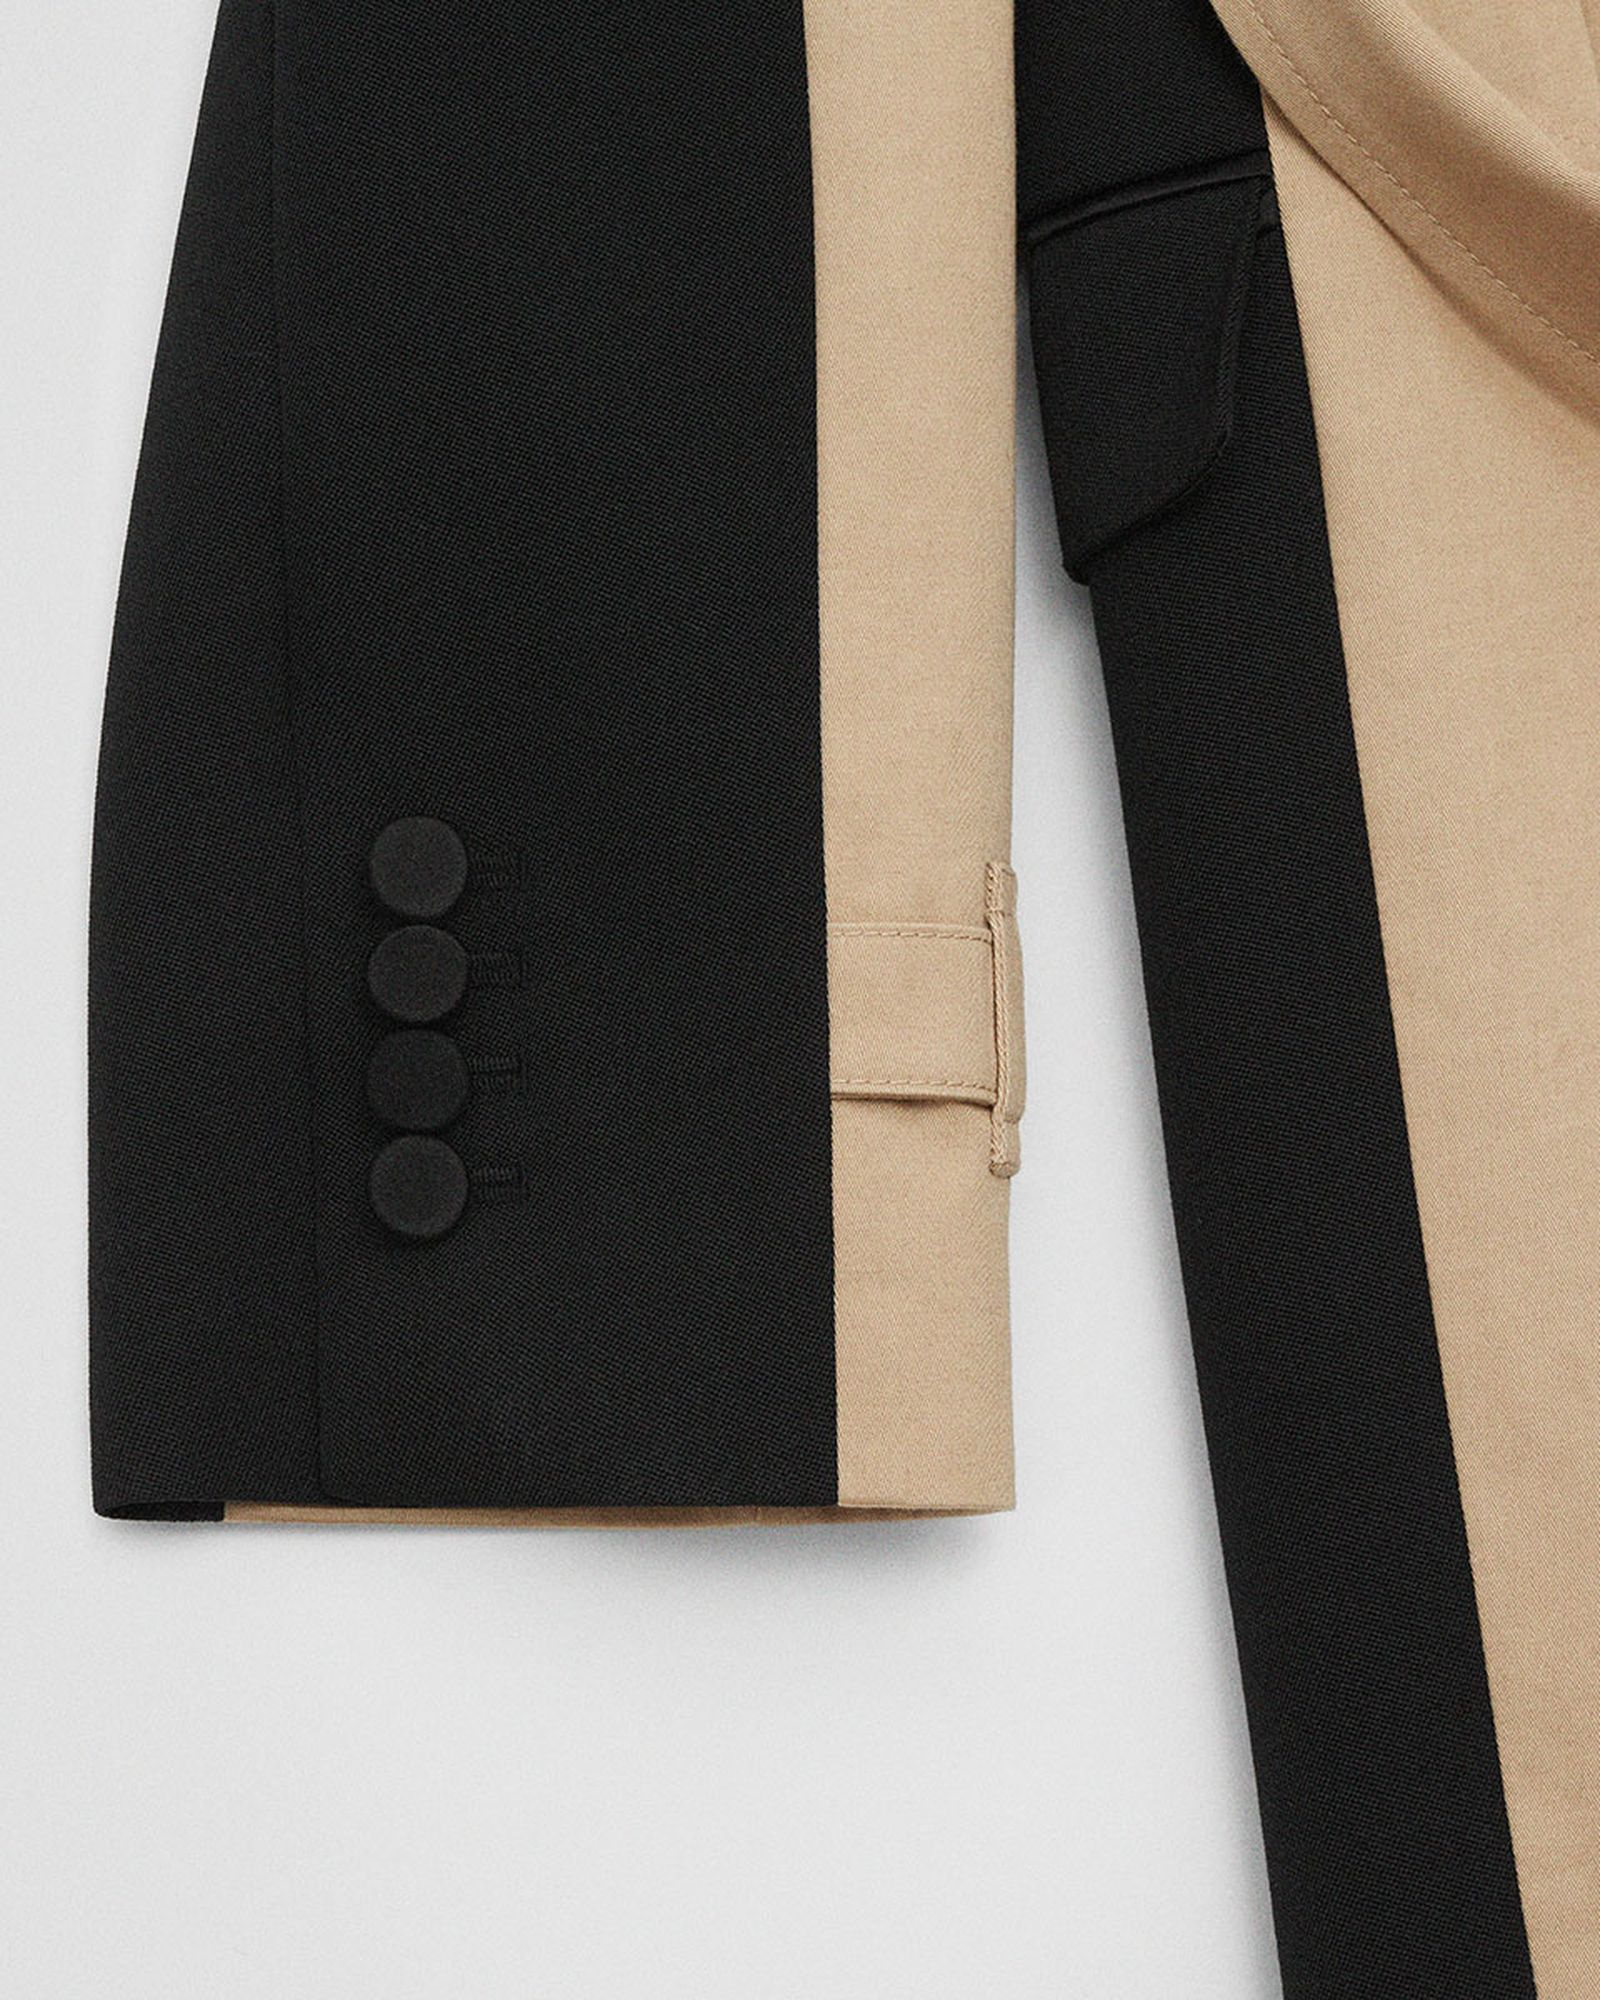 burberry-future-archive-collection-1-04